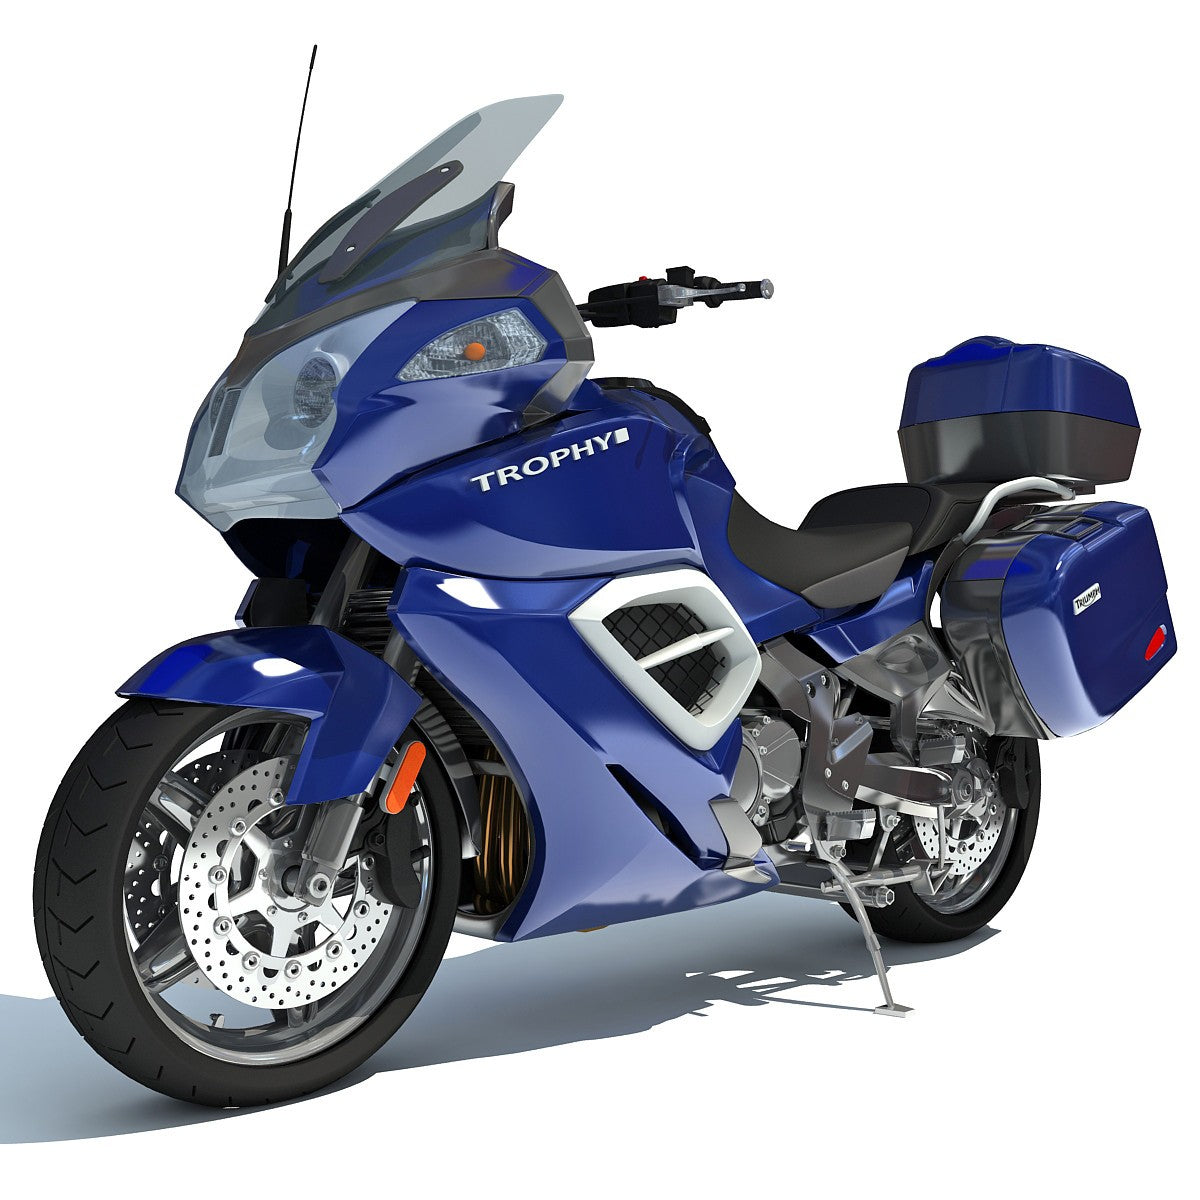 3D Motorcycles and Bikes Models